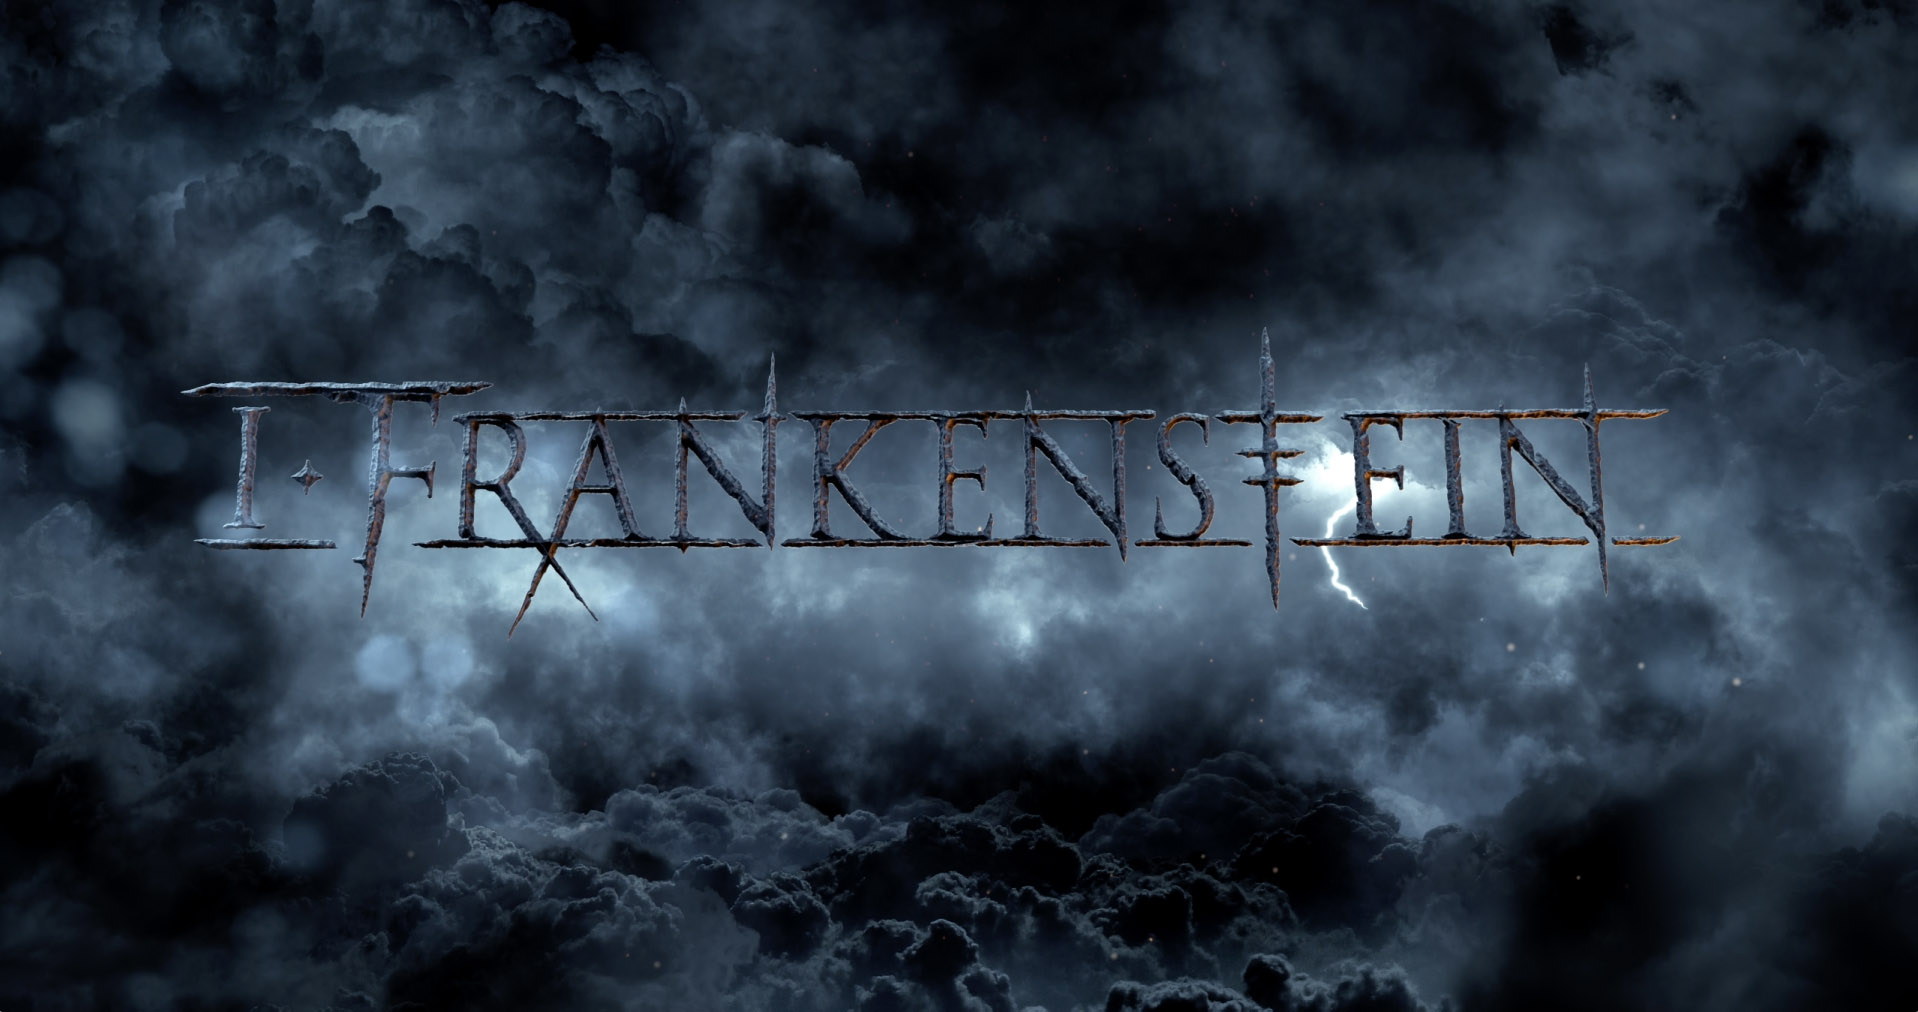 I_Frankenstein_Screenshot__0001_Layer 10.jpg